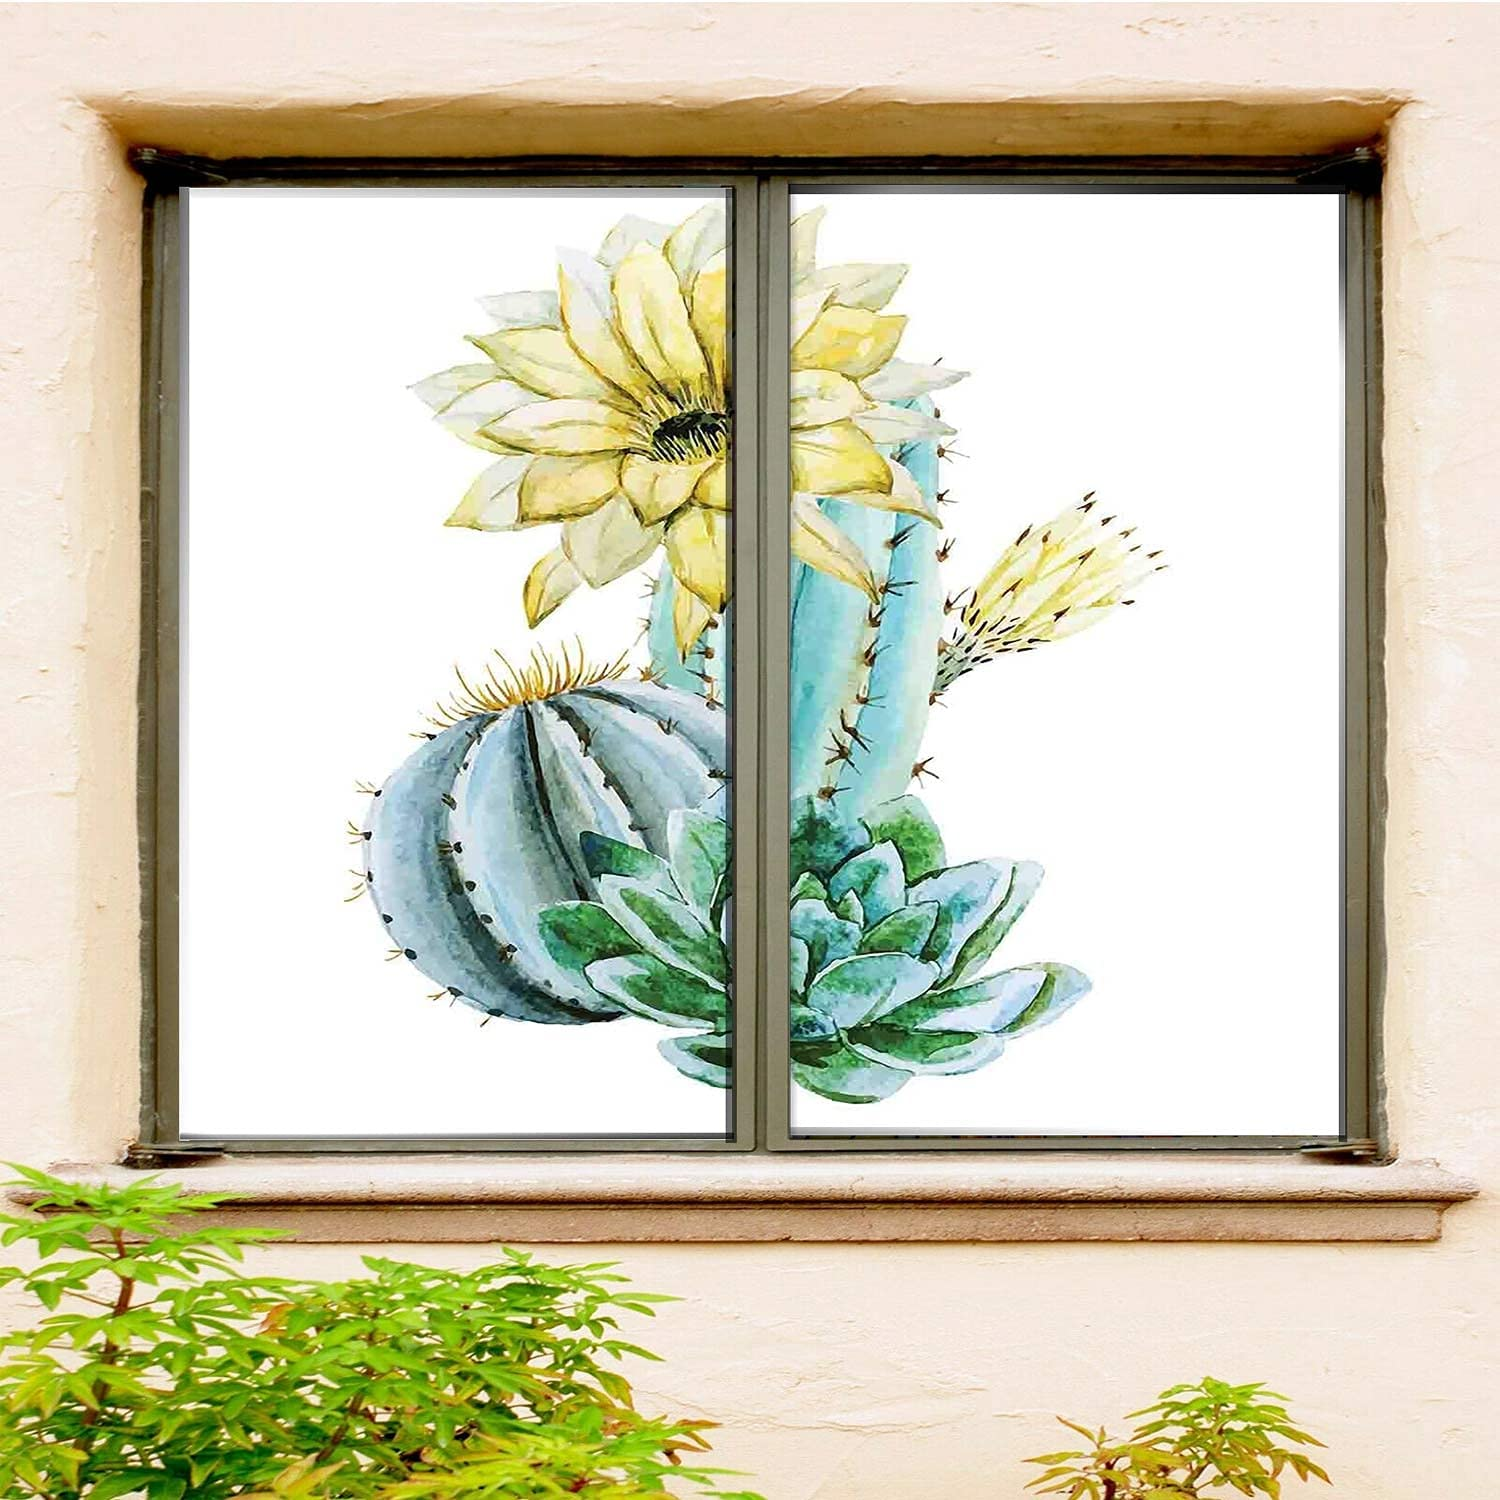 Cactus Office Window Film Self-Adhesive 2 Blue and PCS Max 45% OFF Set Topics on TV White